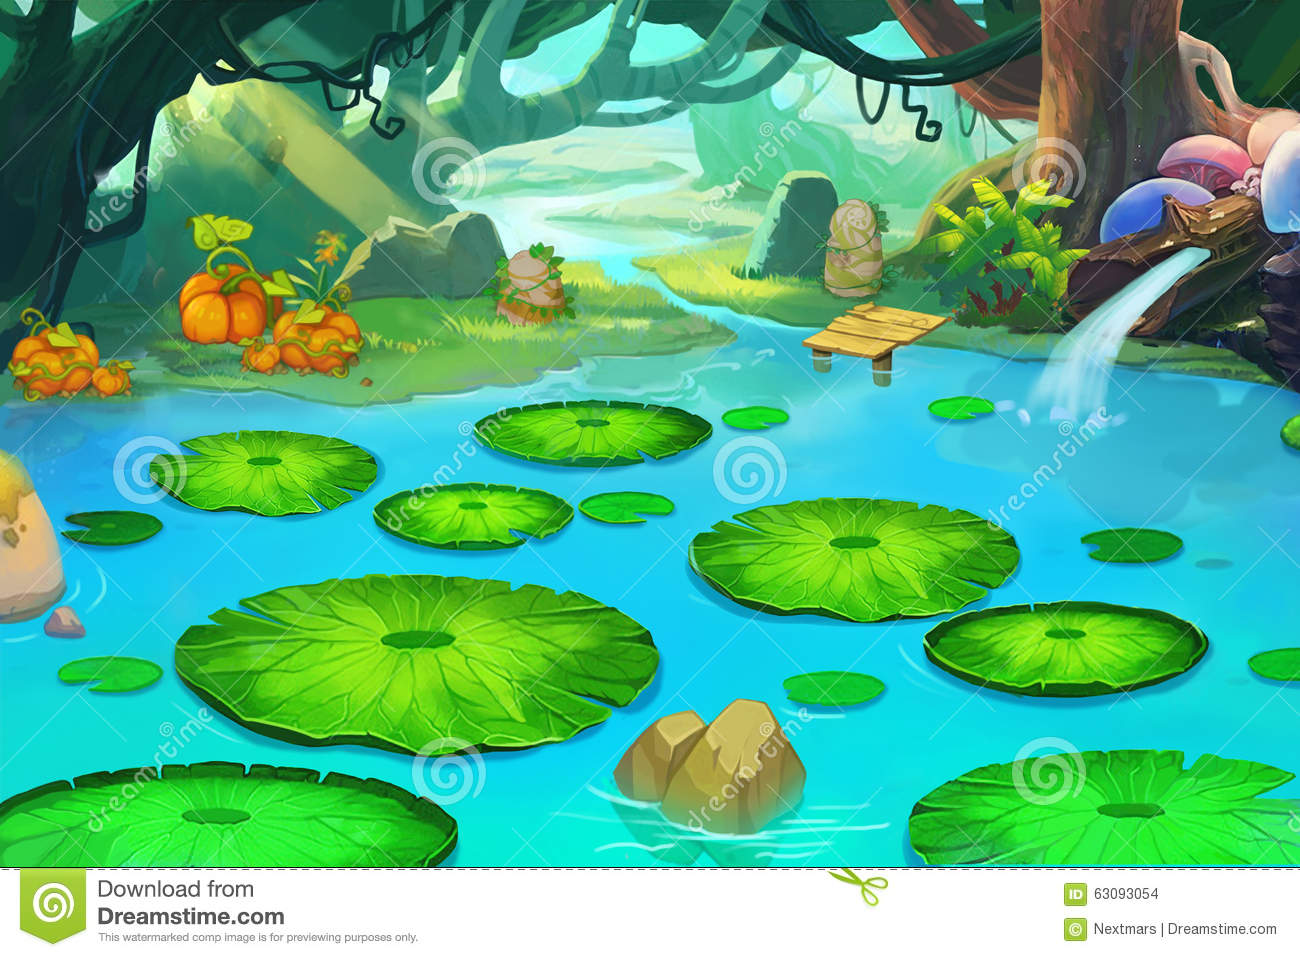 Illustration The Sleeping Pond In The Forgotten Forest